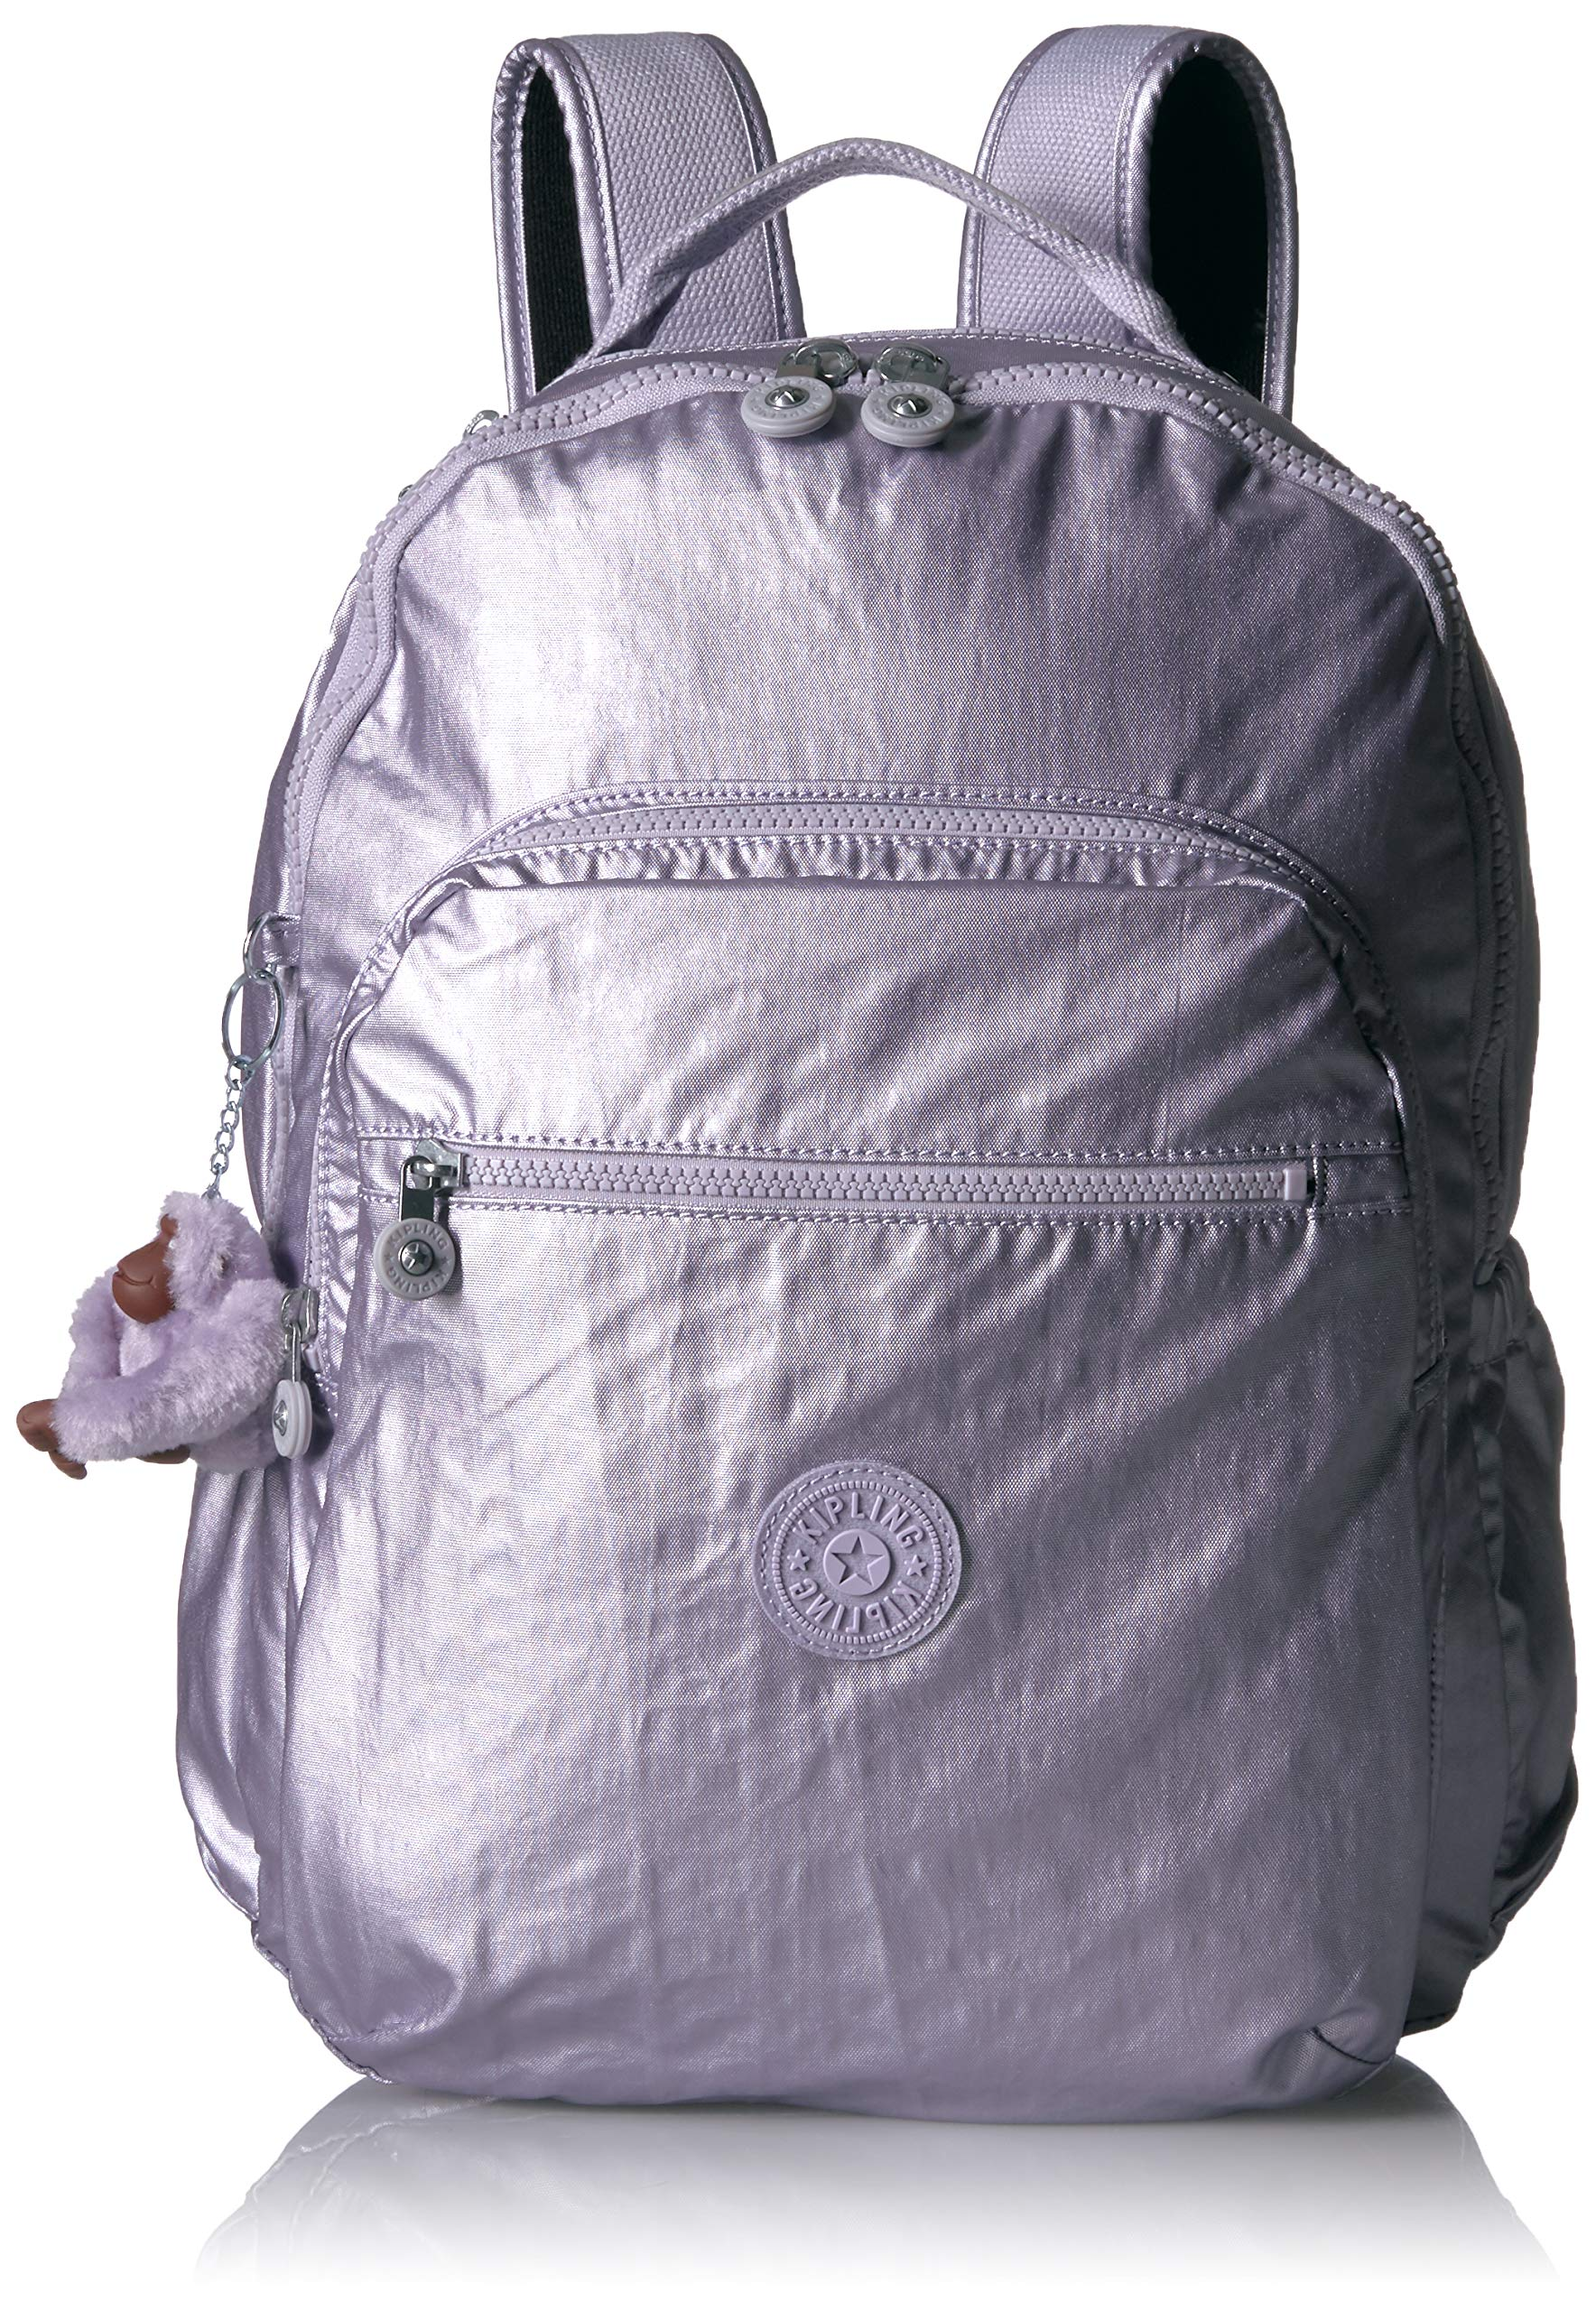 Kipling Seoul Go Laptop, Padded, Adjustable Backpack Straps, Zip Closure, Frosted Lilac Metallic by Kipling